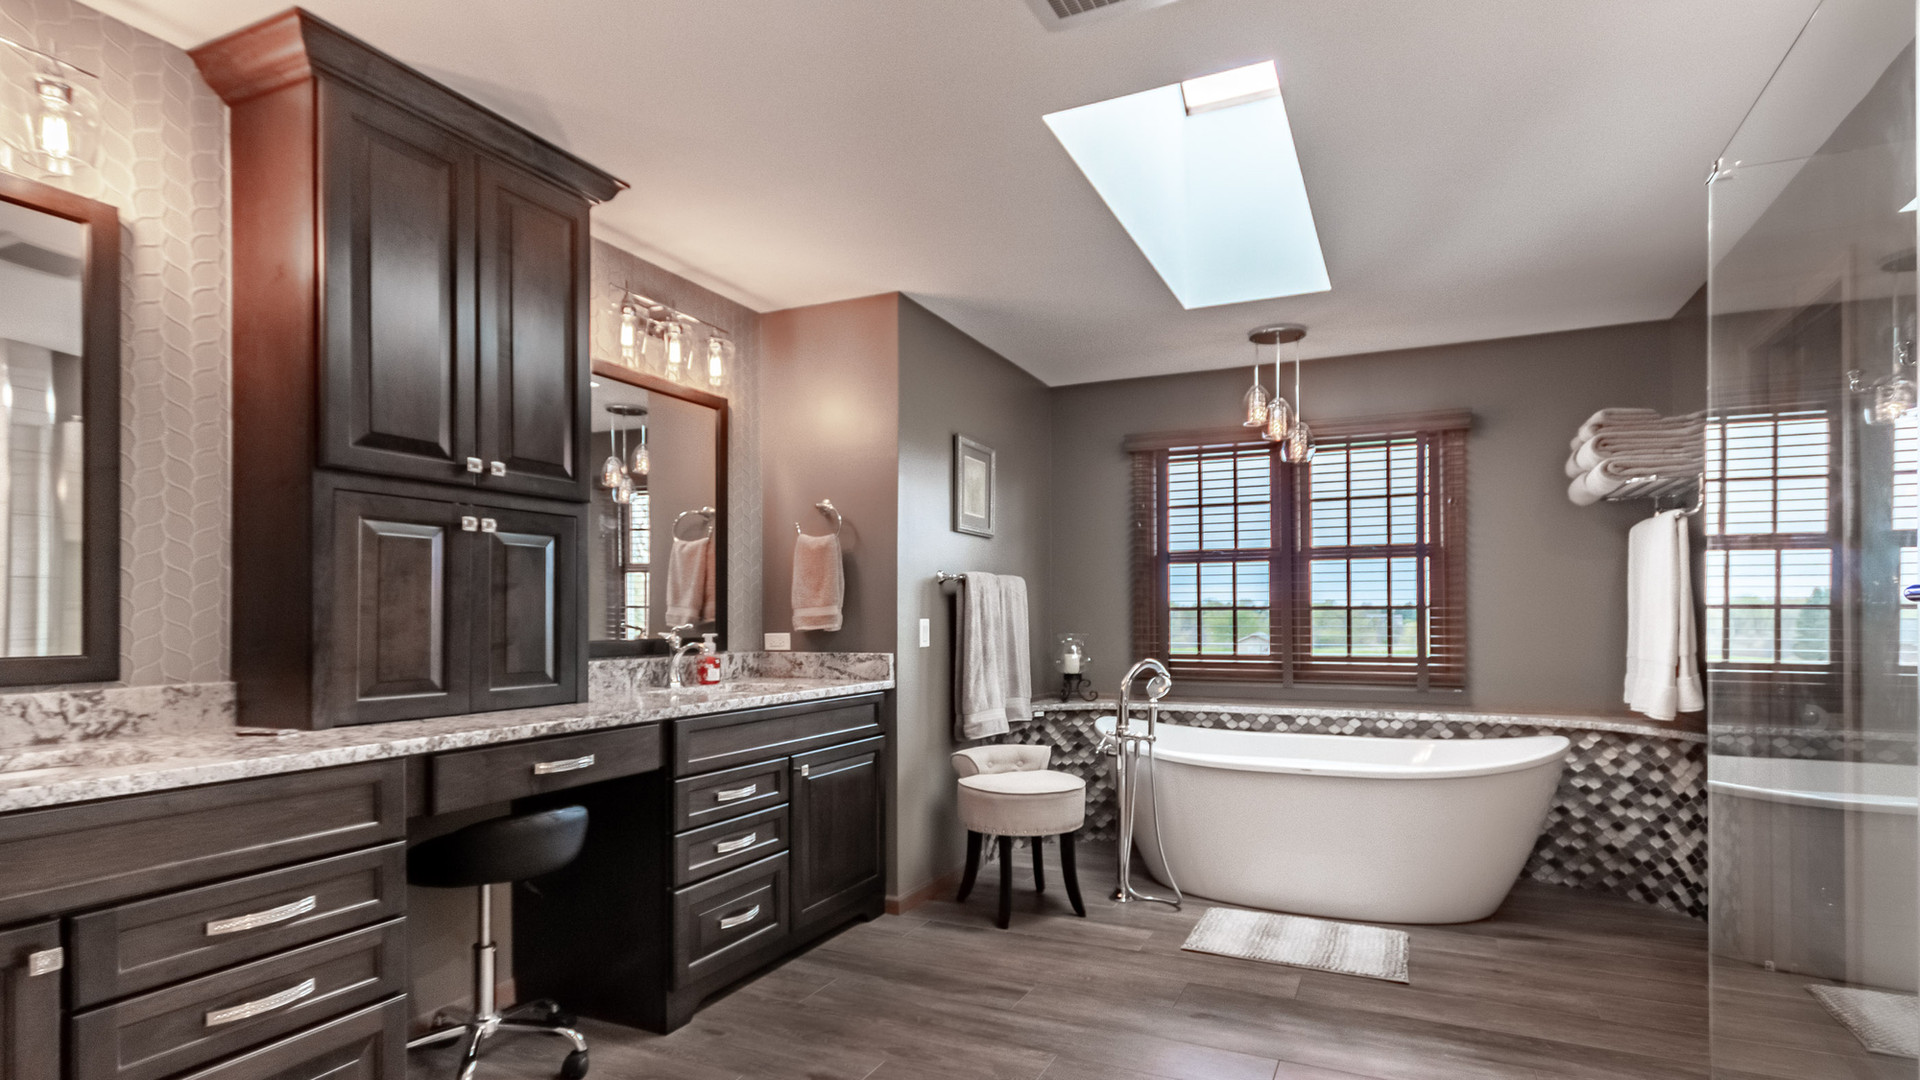 klm spring grove kitchen bath remodel 5-